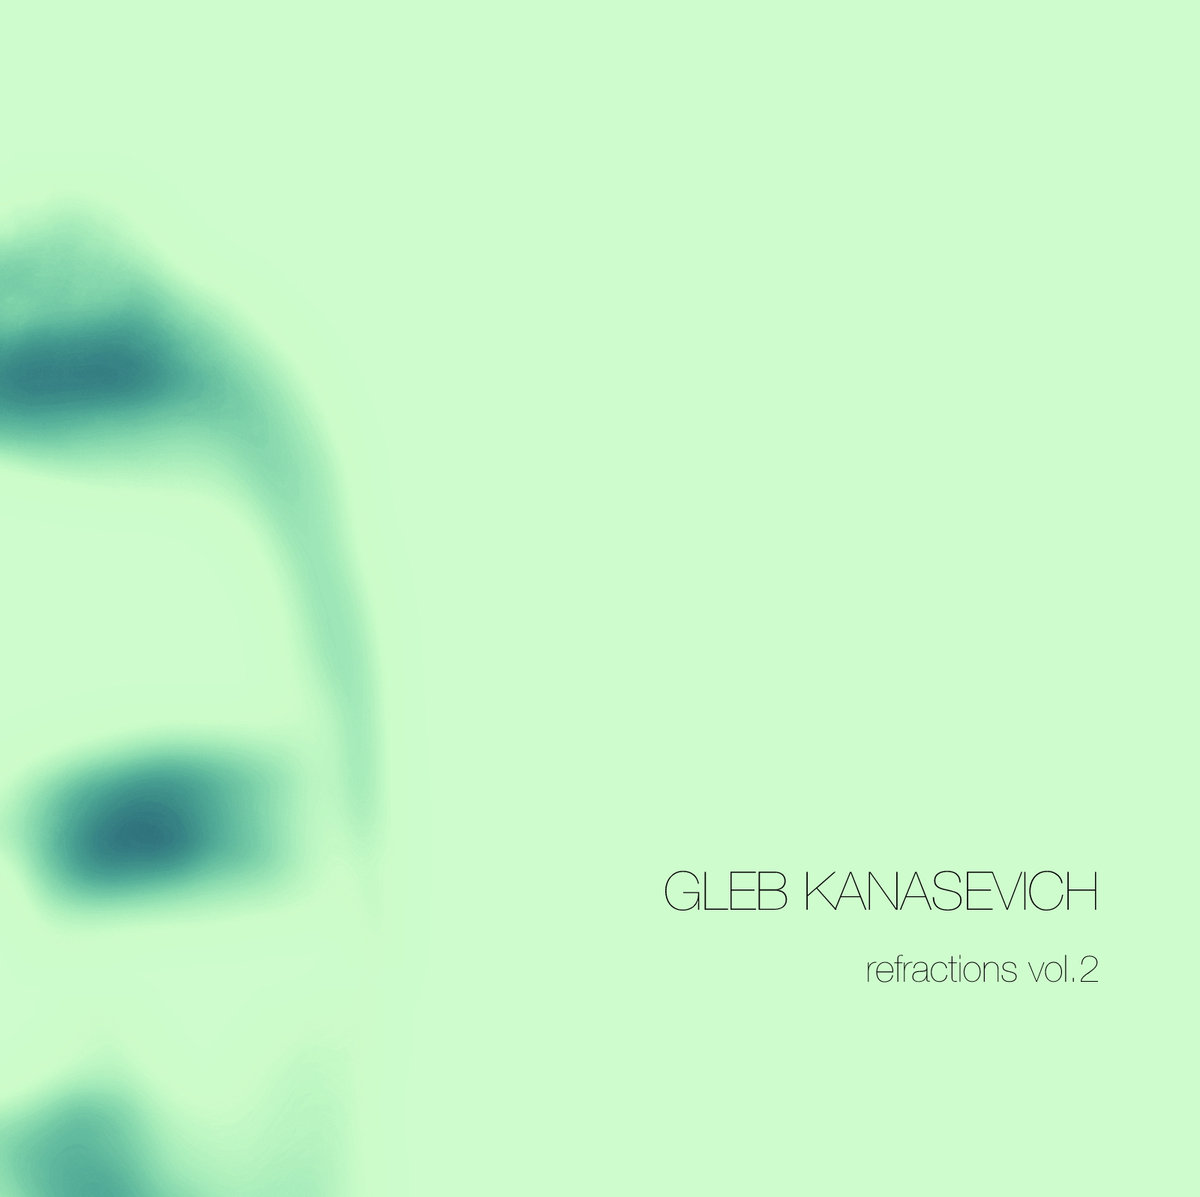 Gleb Kanasevich - refractions vol.2 self-released (2014) composer,  Nausea